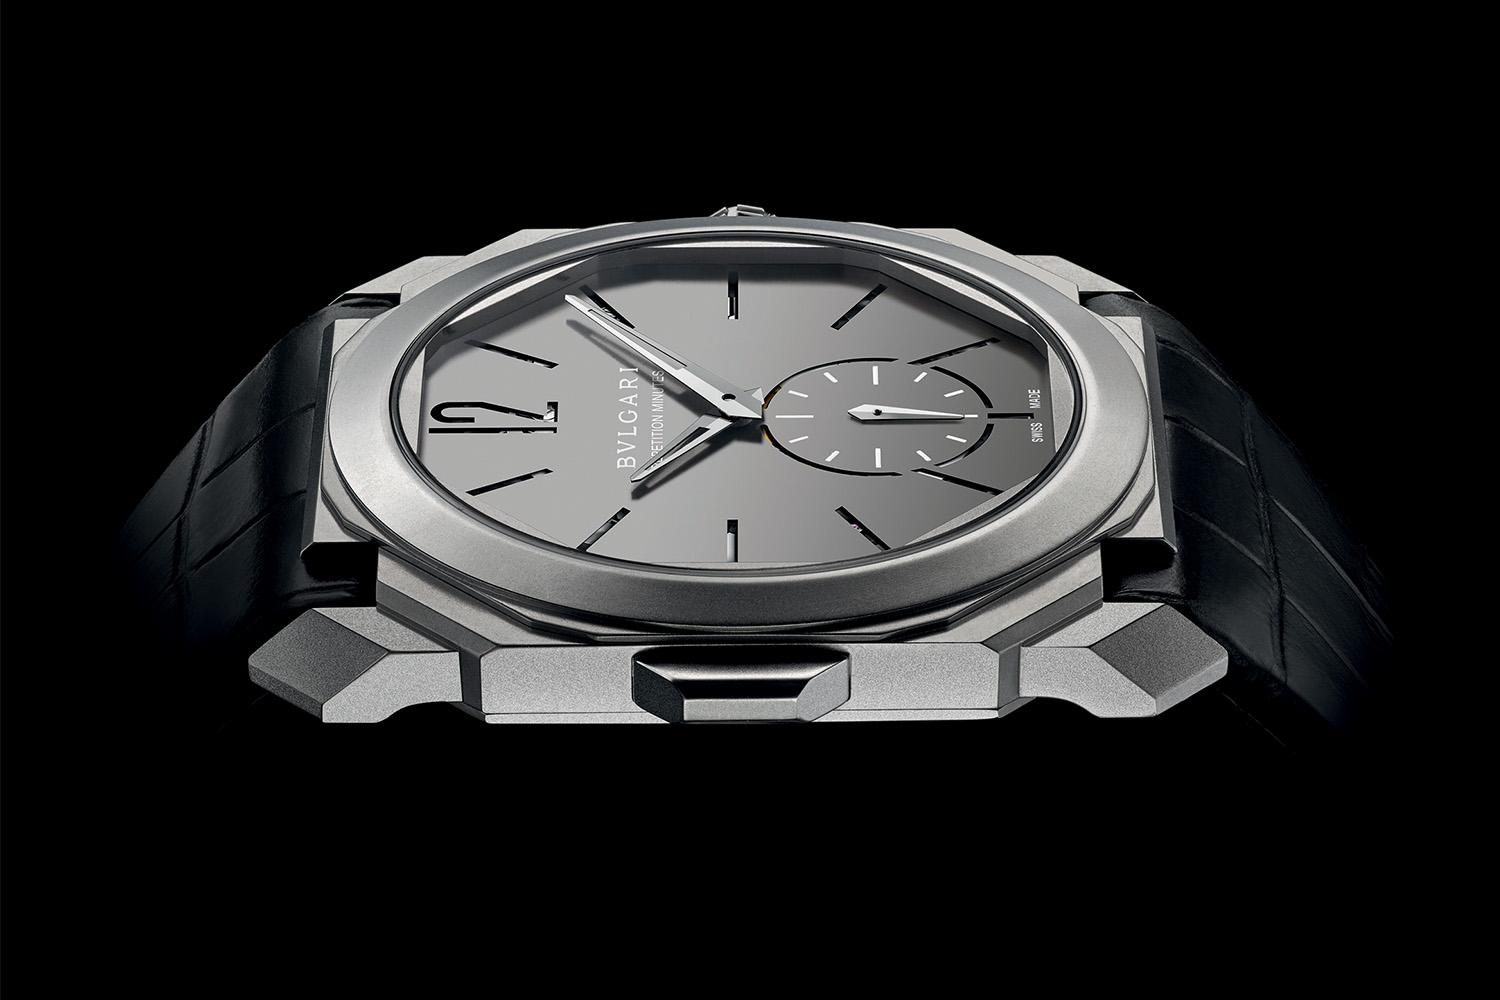 Bvlgari Octo Finissimo Minute Repeater - world's thinnest minute repeater